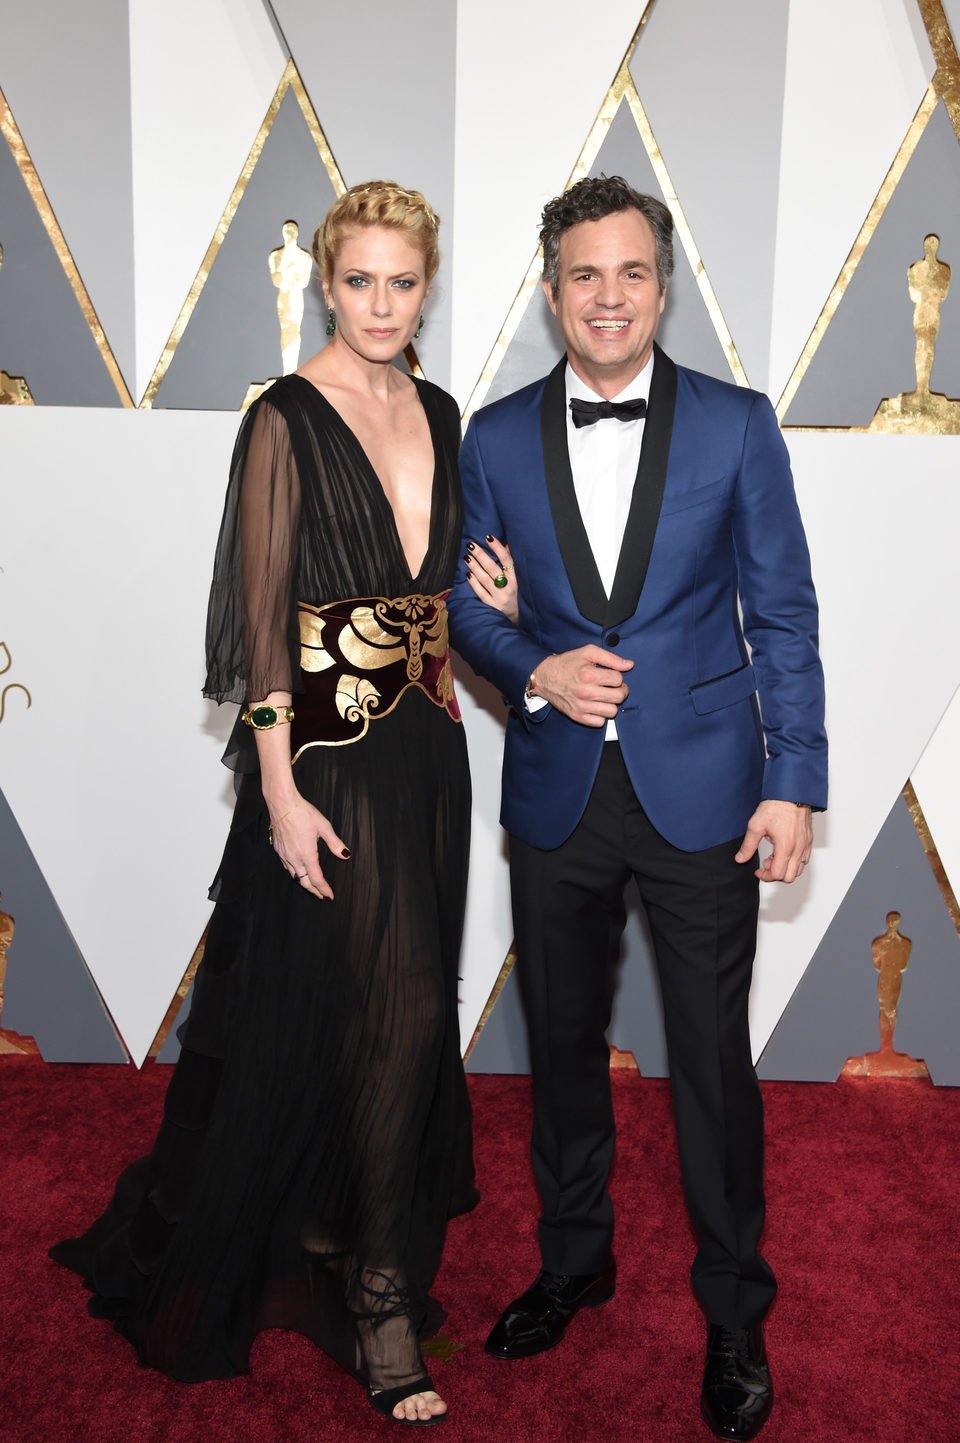 Mark Ruffalo and Sunrise Coigney at the Oscars 2016 red carpet